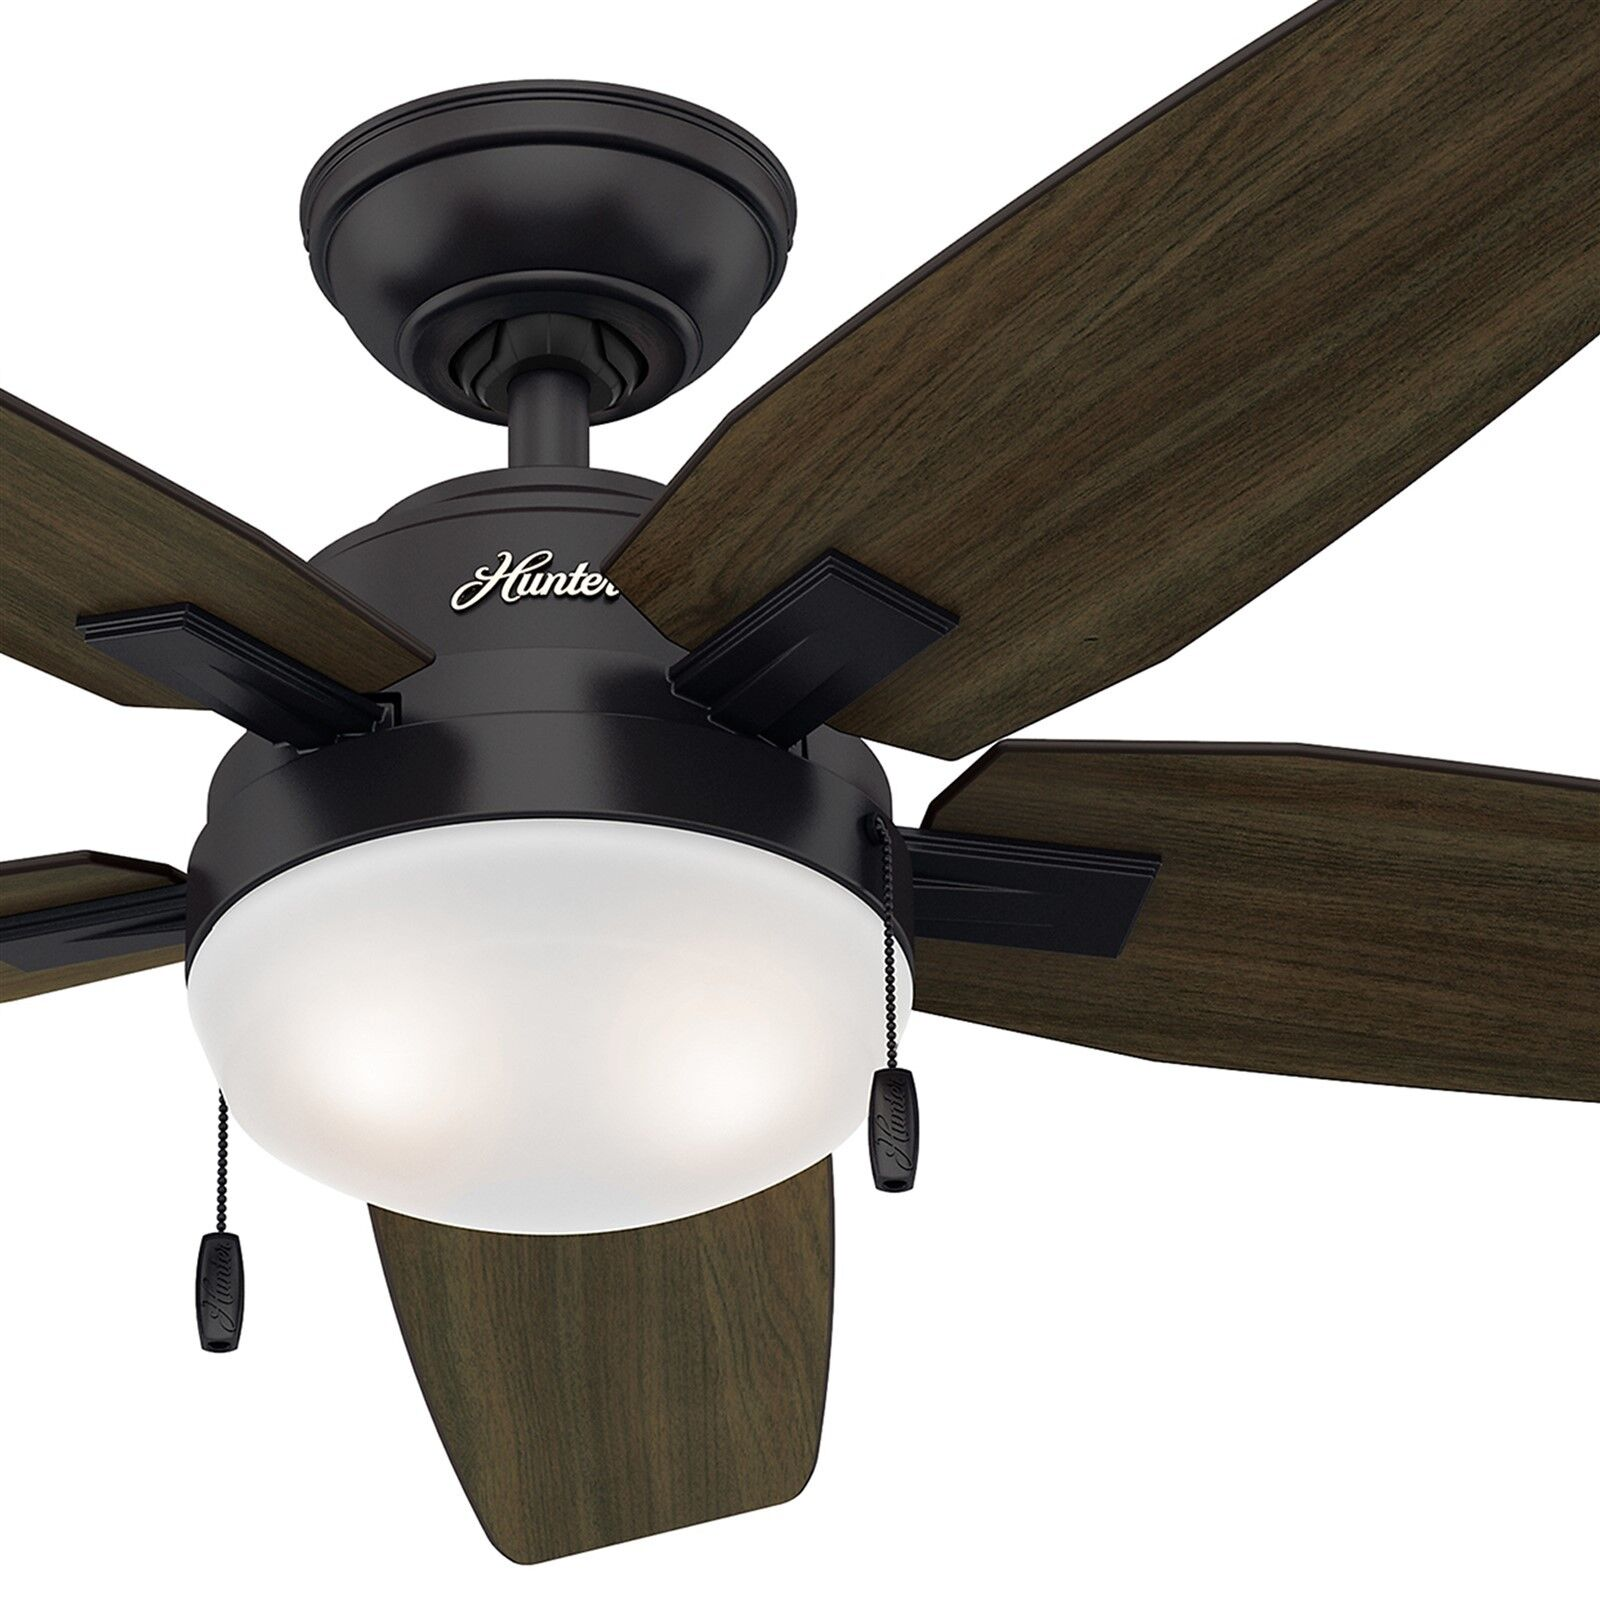 46 Quot Hunter Noble Bronze Contemporary Ceiling Fan Cfl Light Kit Included Ebay